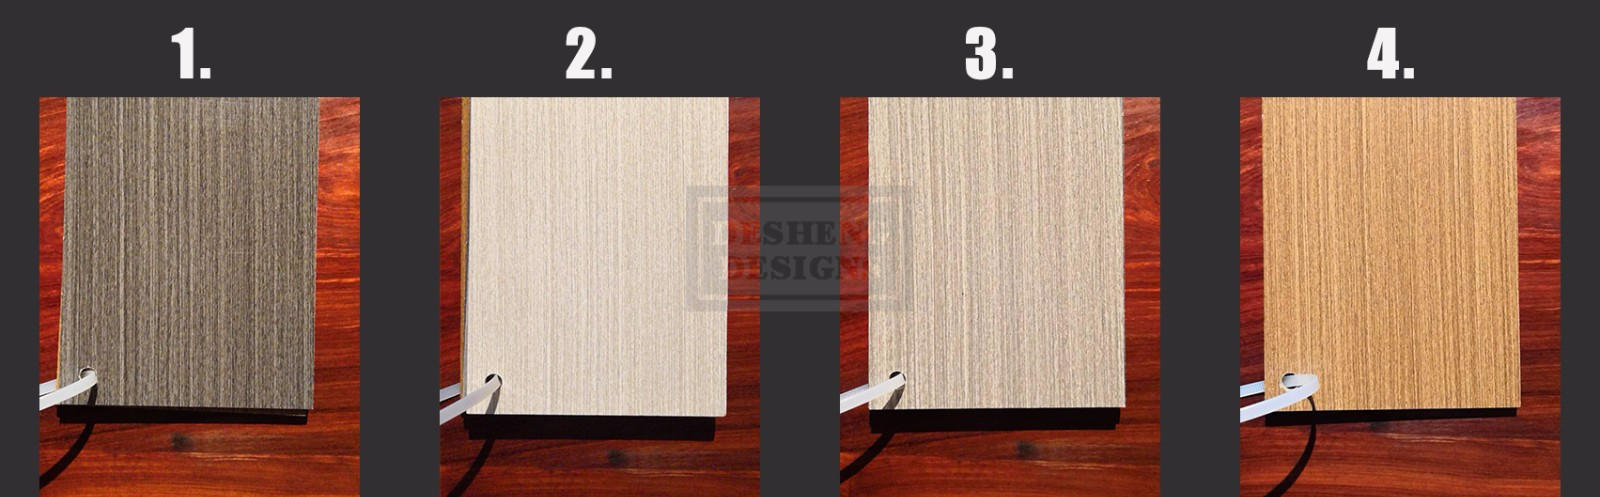 Desheng Wood Industry-Find Door Skin Plywood Seamless Stitching 3d Twilled Wood Grain Laminated-9